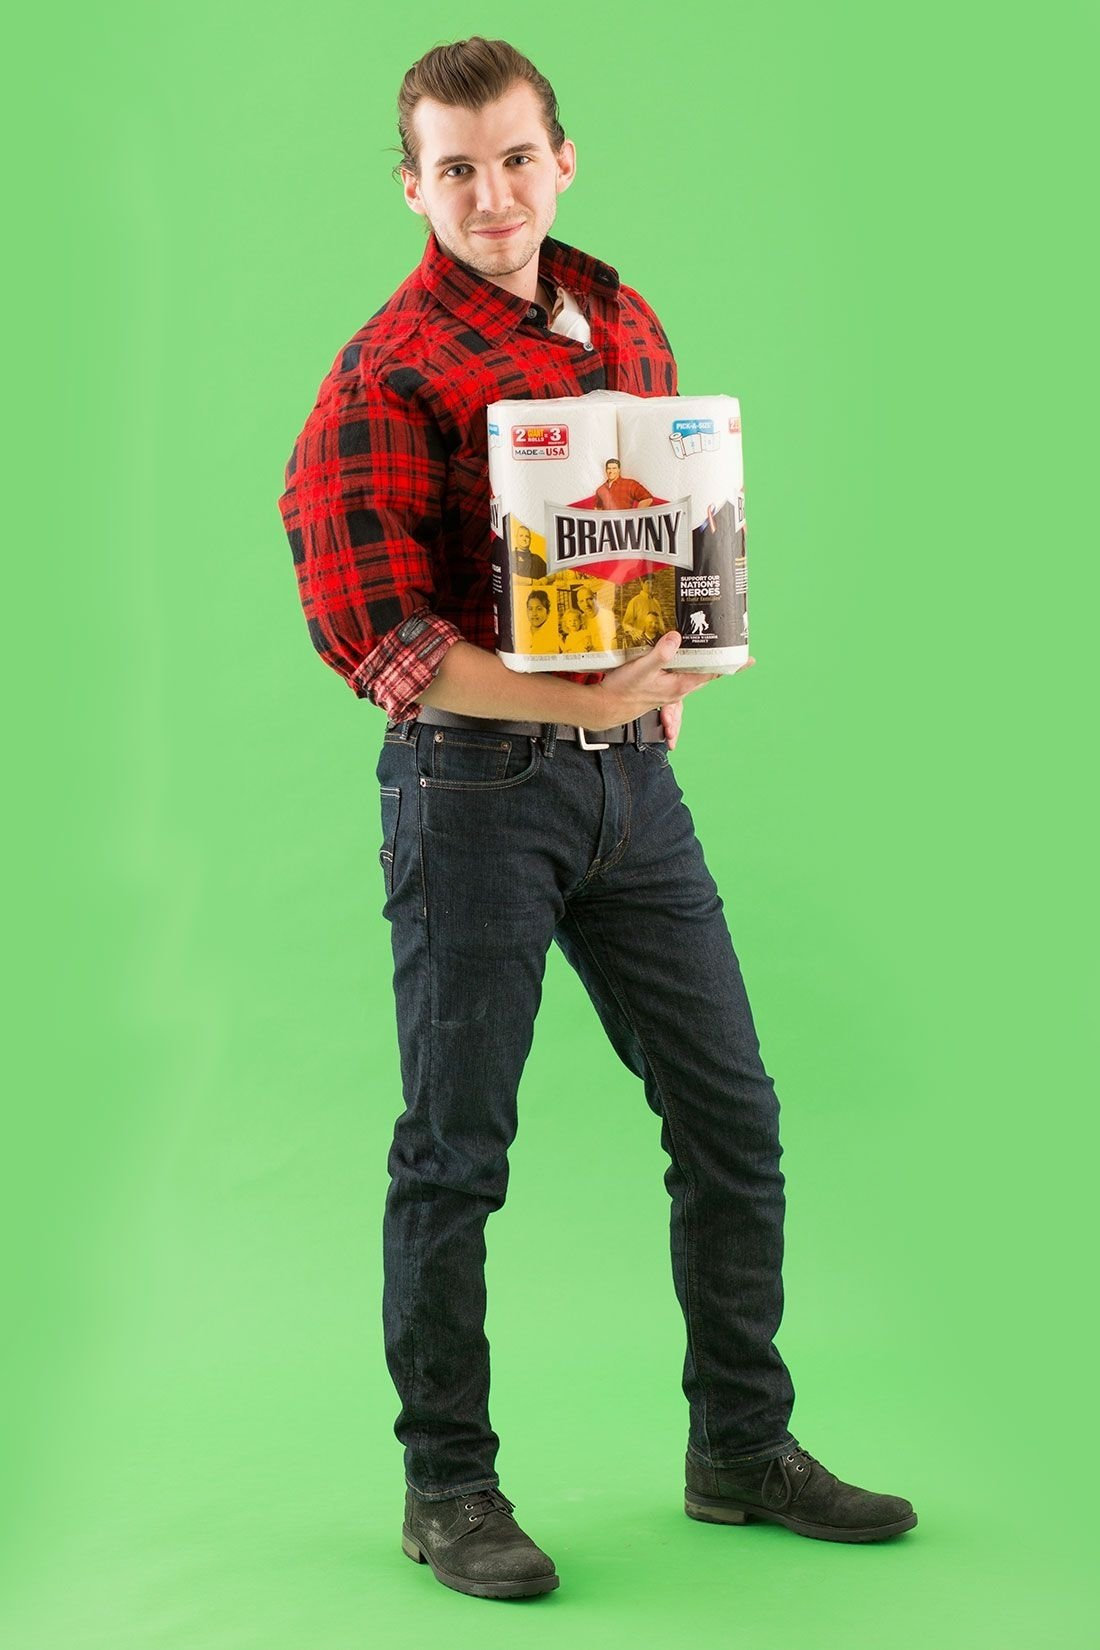 10 Attractive Easy Halloween Costume Ideas Men all you really need is a flannel shirt to turn into the brawny man 2